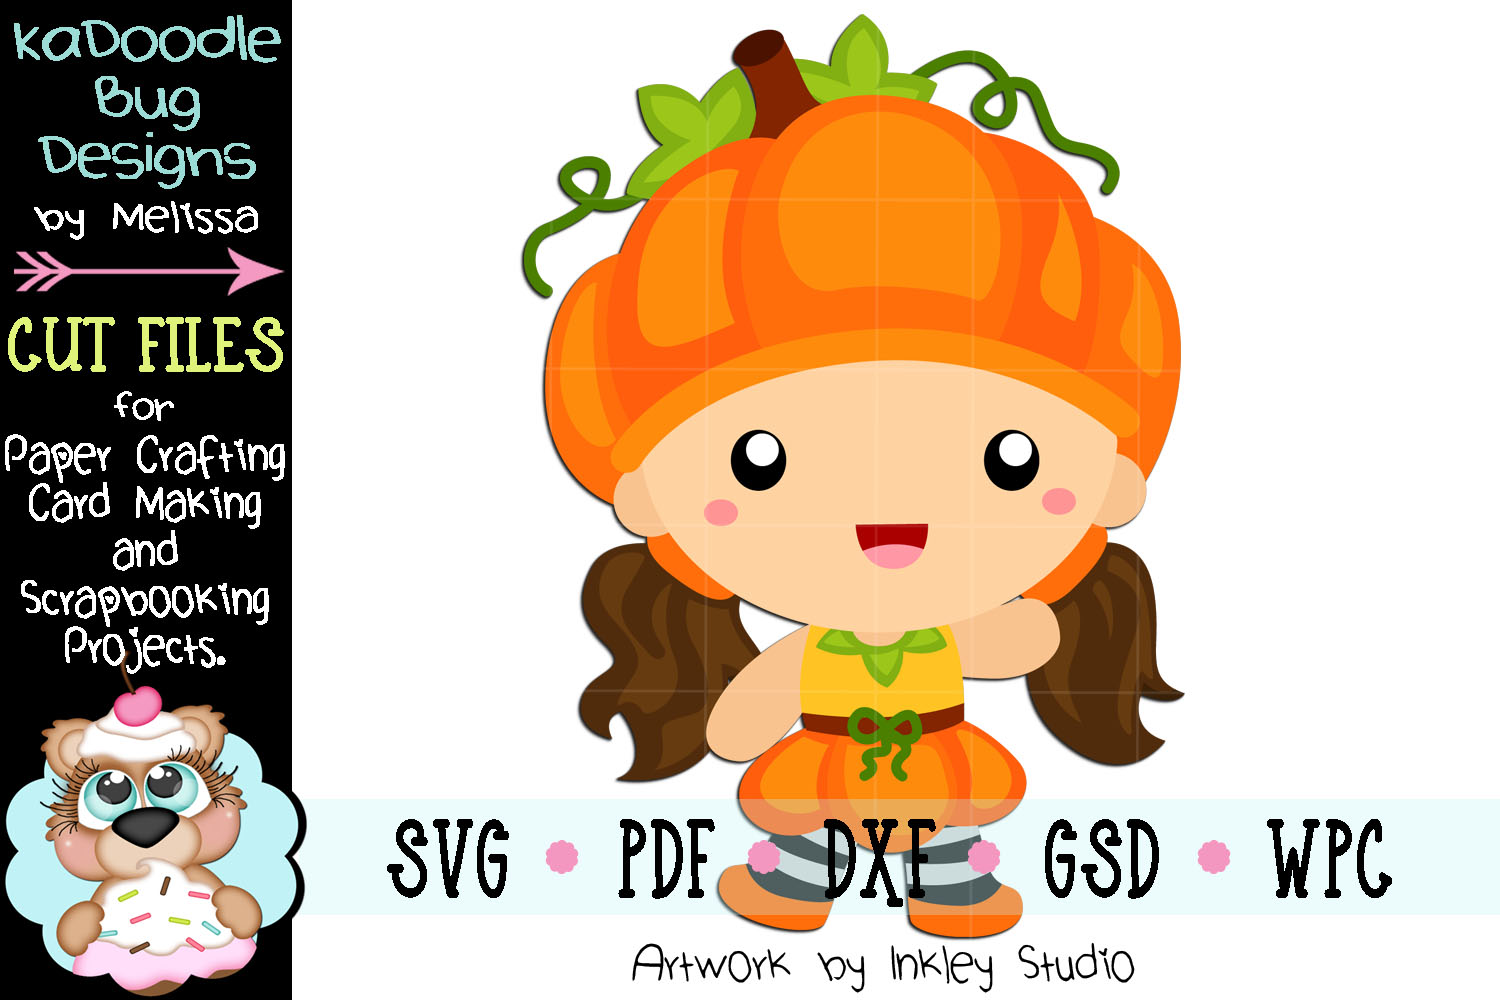 Pumpkin Girl Cutie Cut File - SVG PDF DXF GSD WPC example image 1